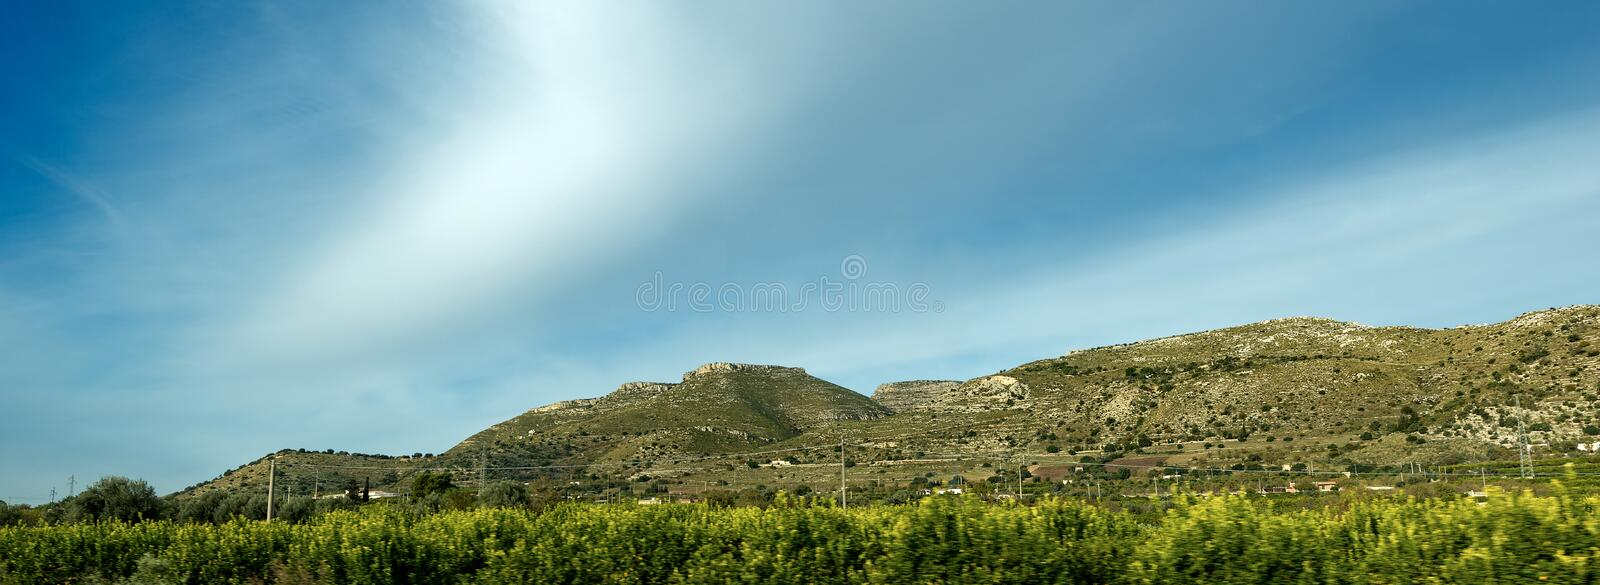 Typical Hills of the Sicily near Siracusa Italy. Typical hills of Sicily island near Syracuse Siracusa, Italy, Europe royalty free stock image